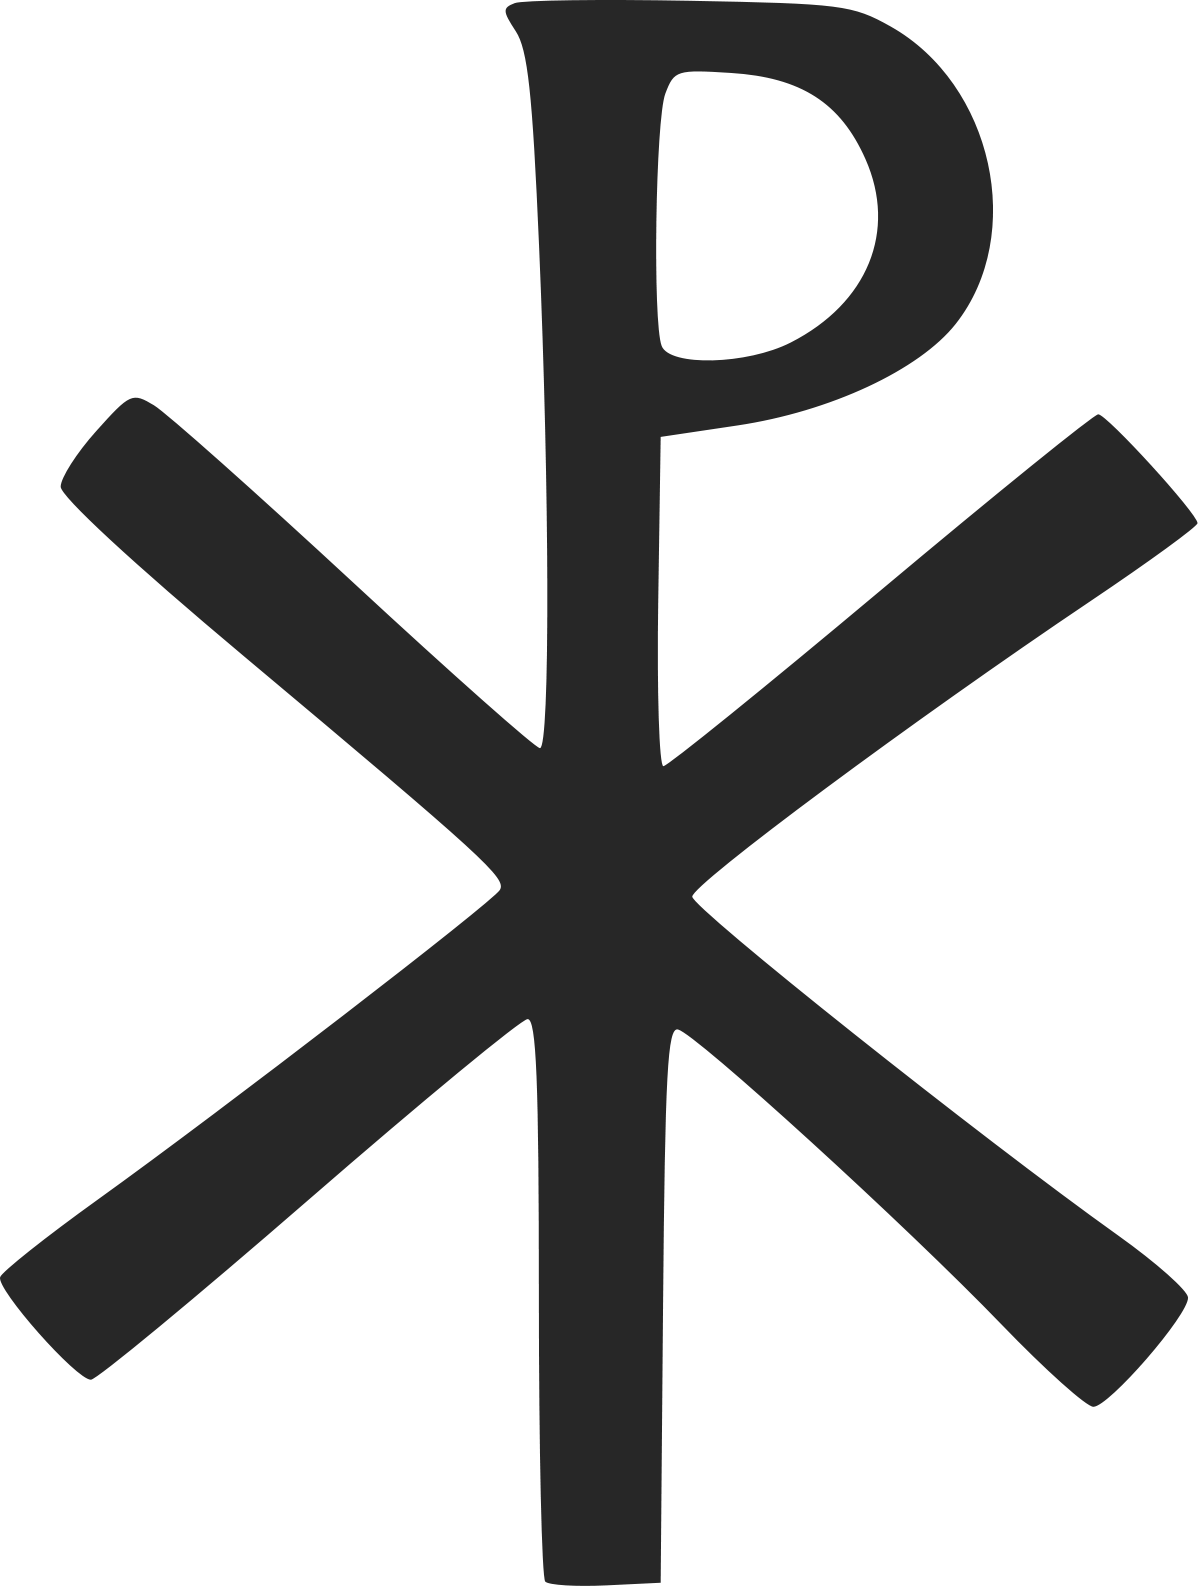 image royalty free library Chi Rho